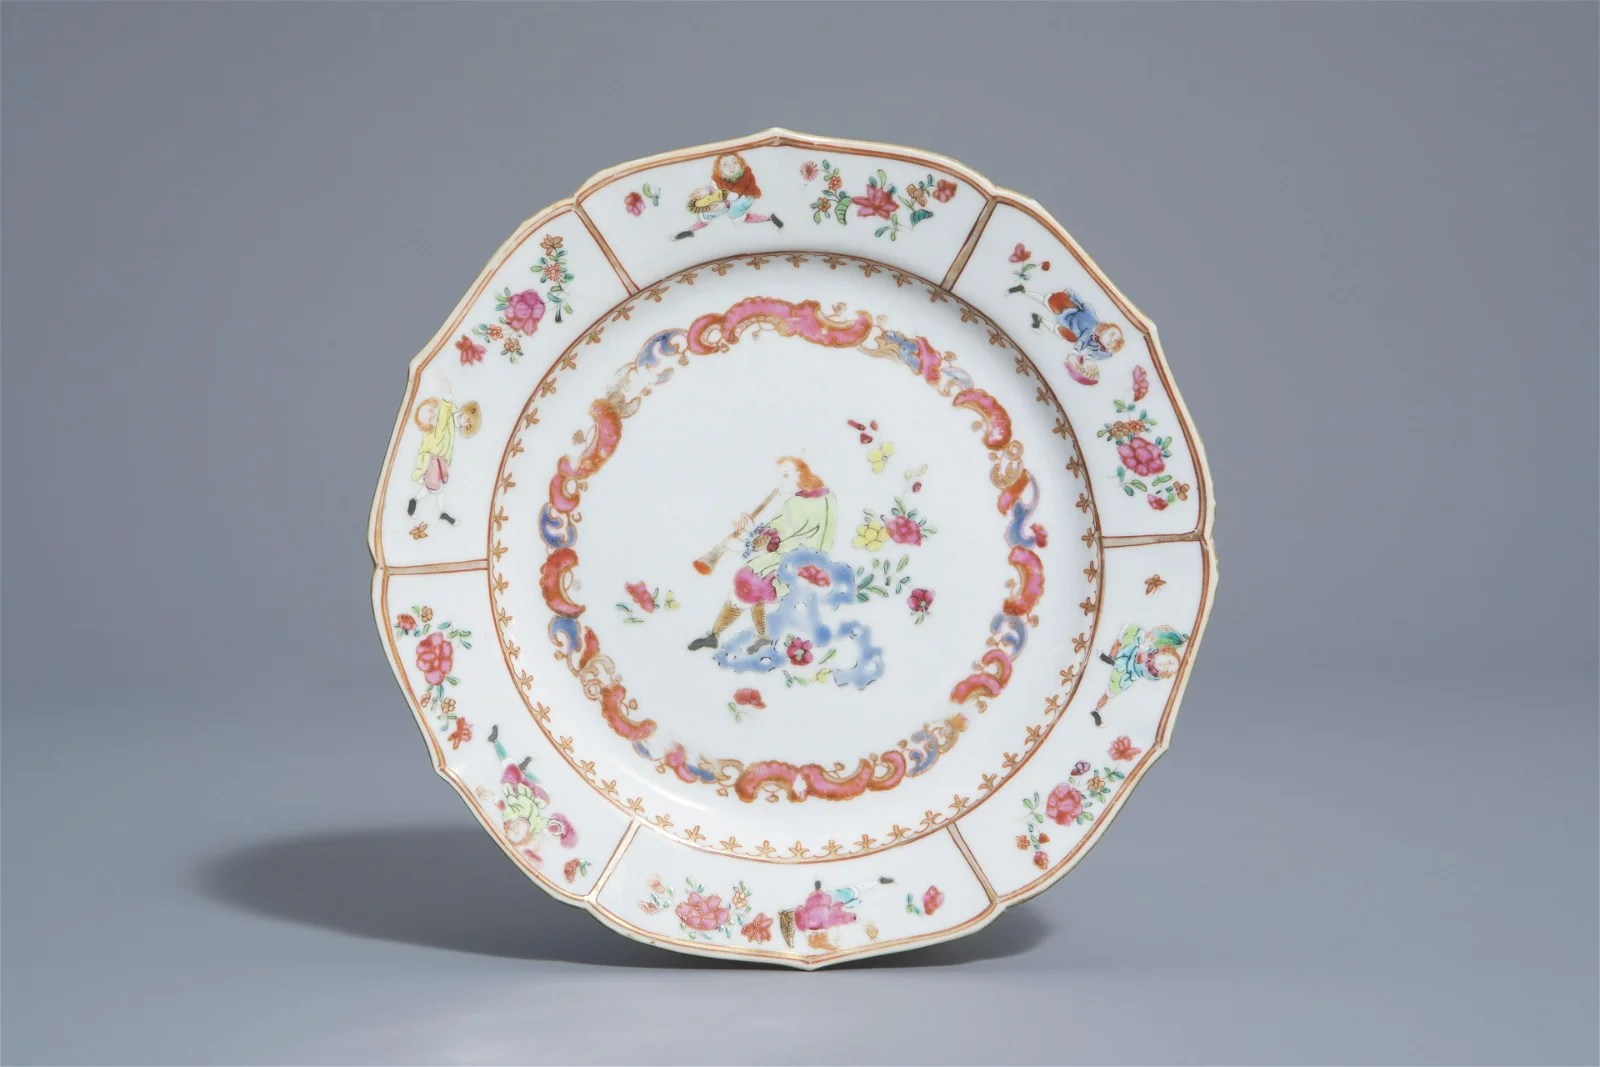 A Chinese famille rose plate with an European flute